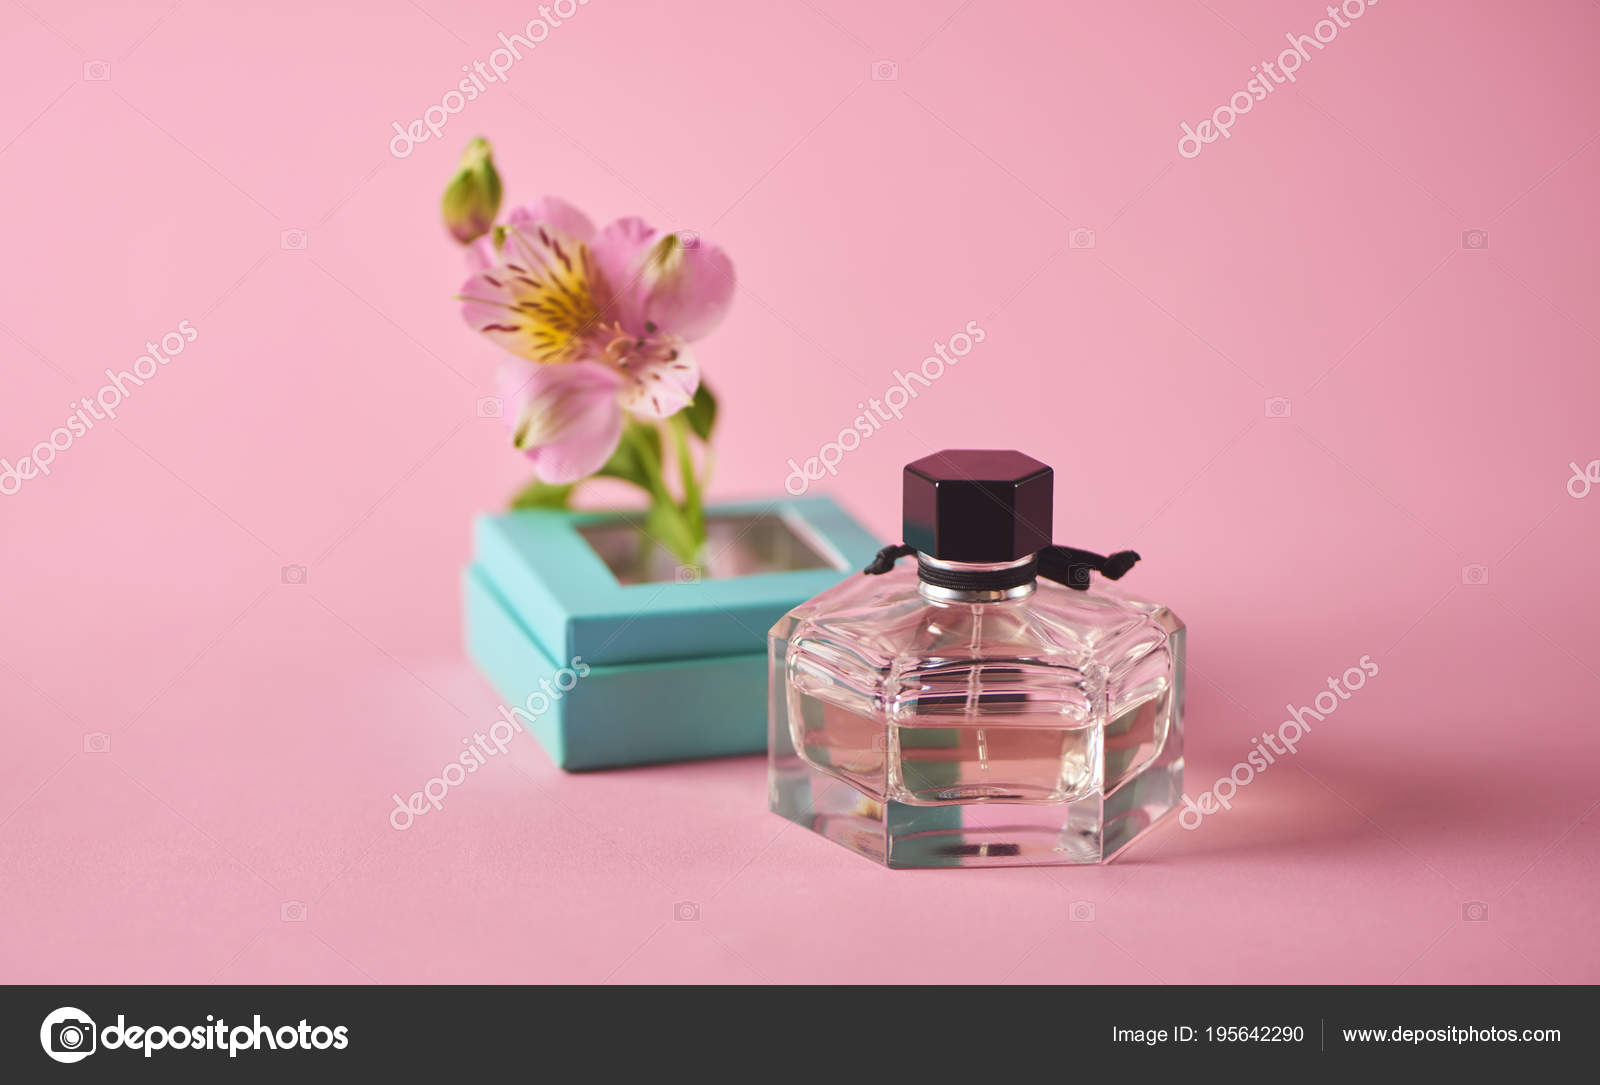 Opened Blue Perfume Box Pink Flower Pink Background Minimal Concept